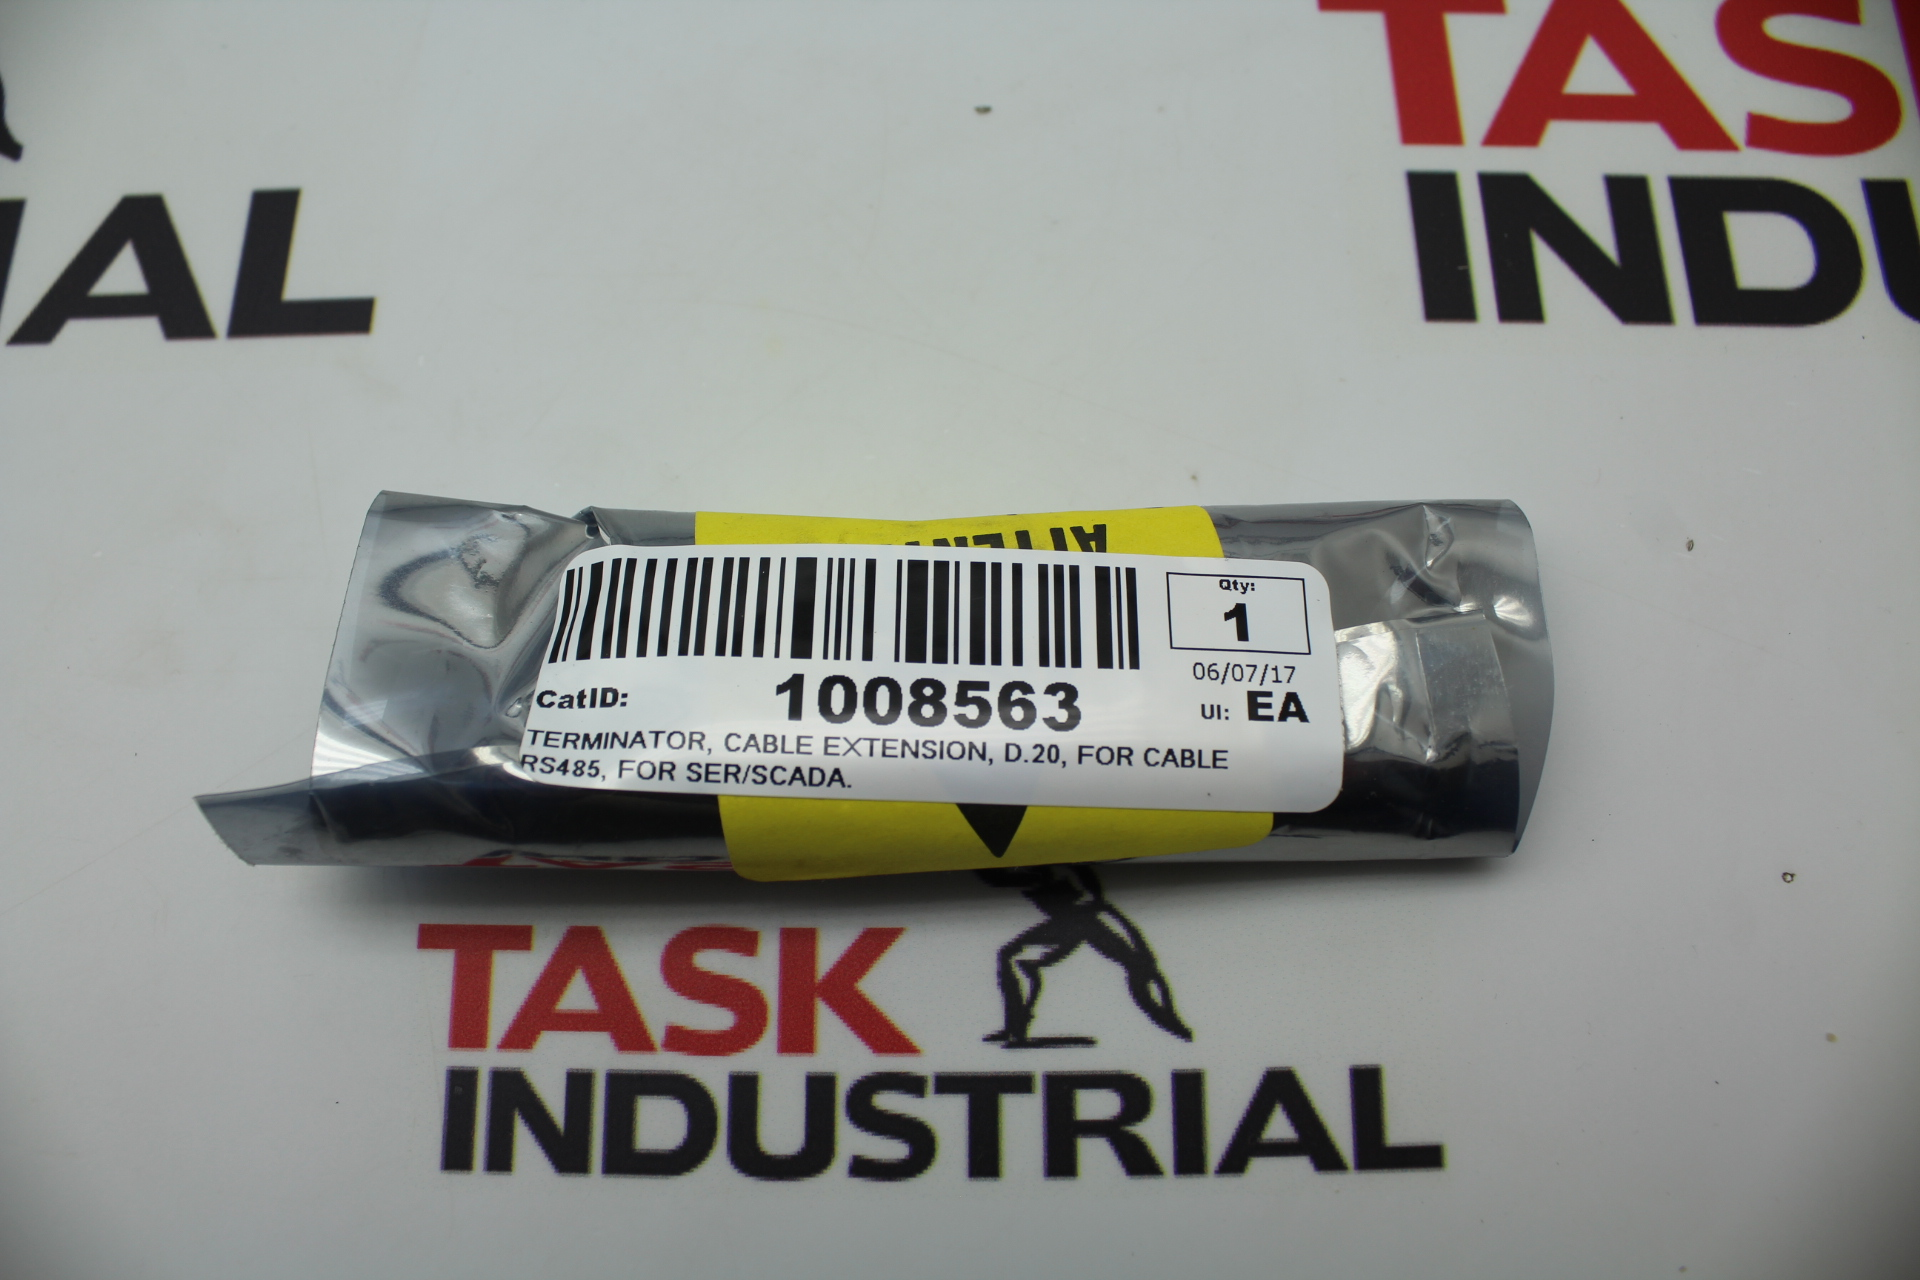 Terminator, Cable Extension, D.20, For Cable RS485 1008563